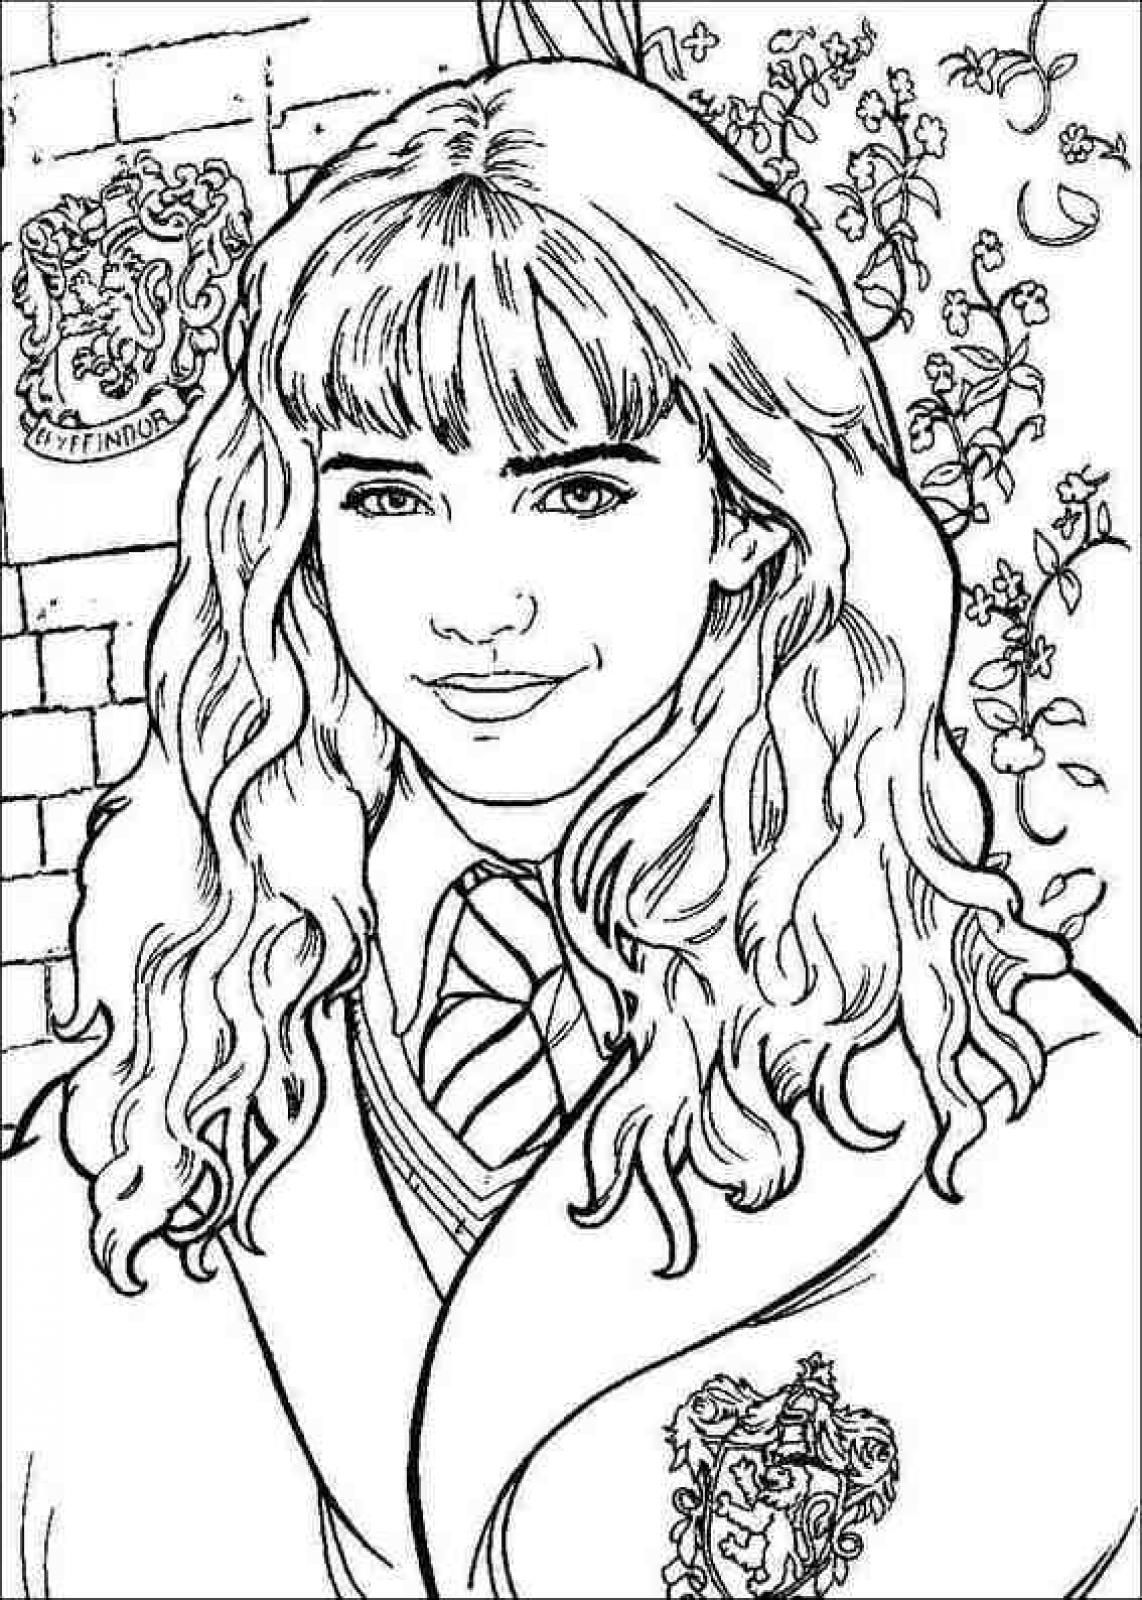 daniel radcliffe played harry potter throughout the series which lasted for about a decade printable coloring pagesadult - Harry Potter Coloring Pages Free Printable